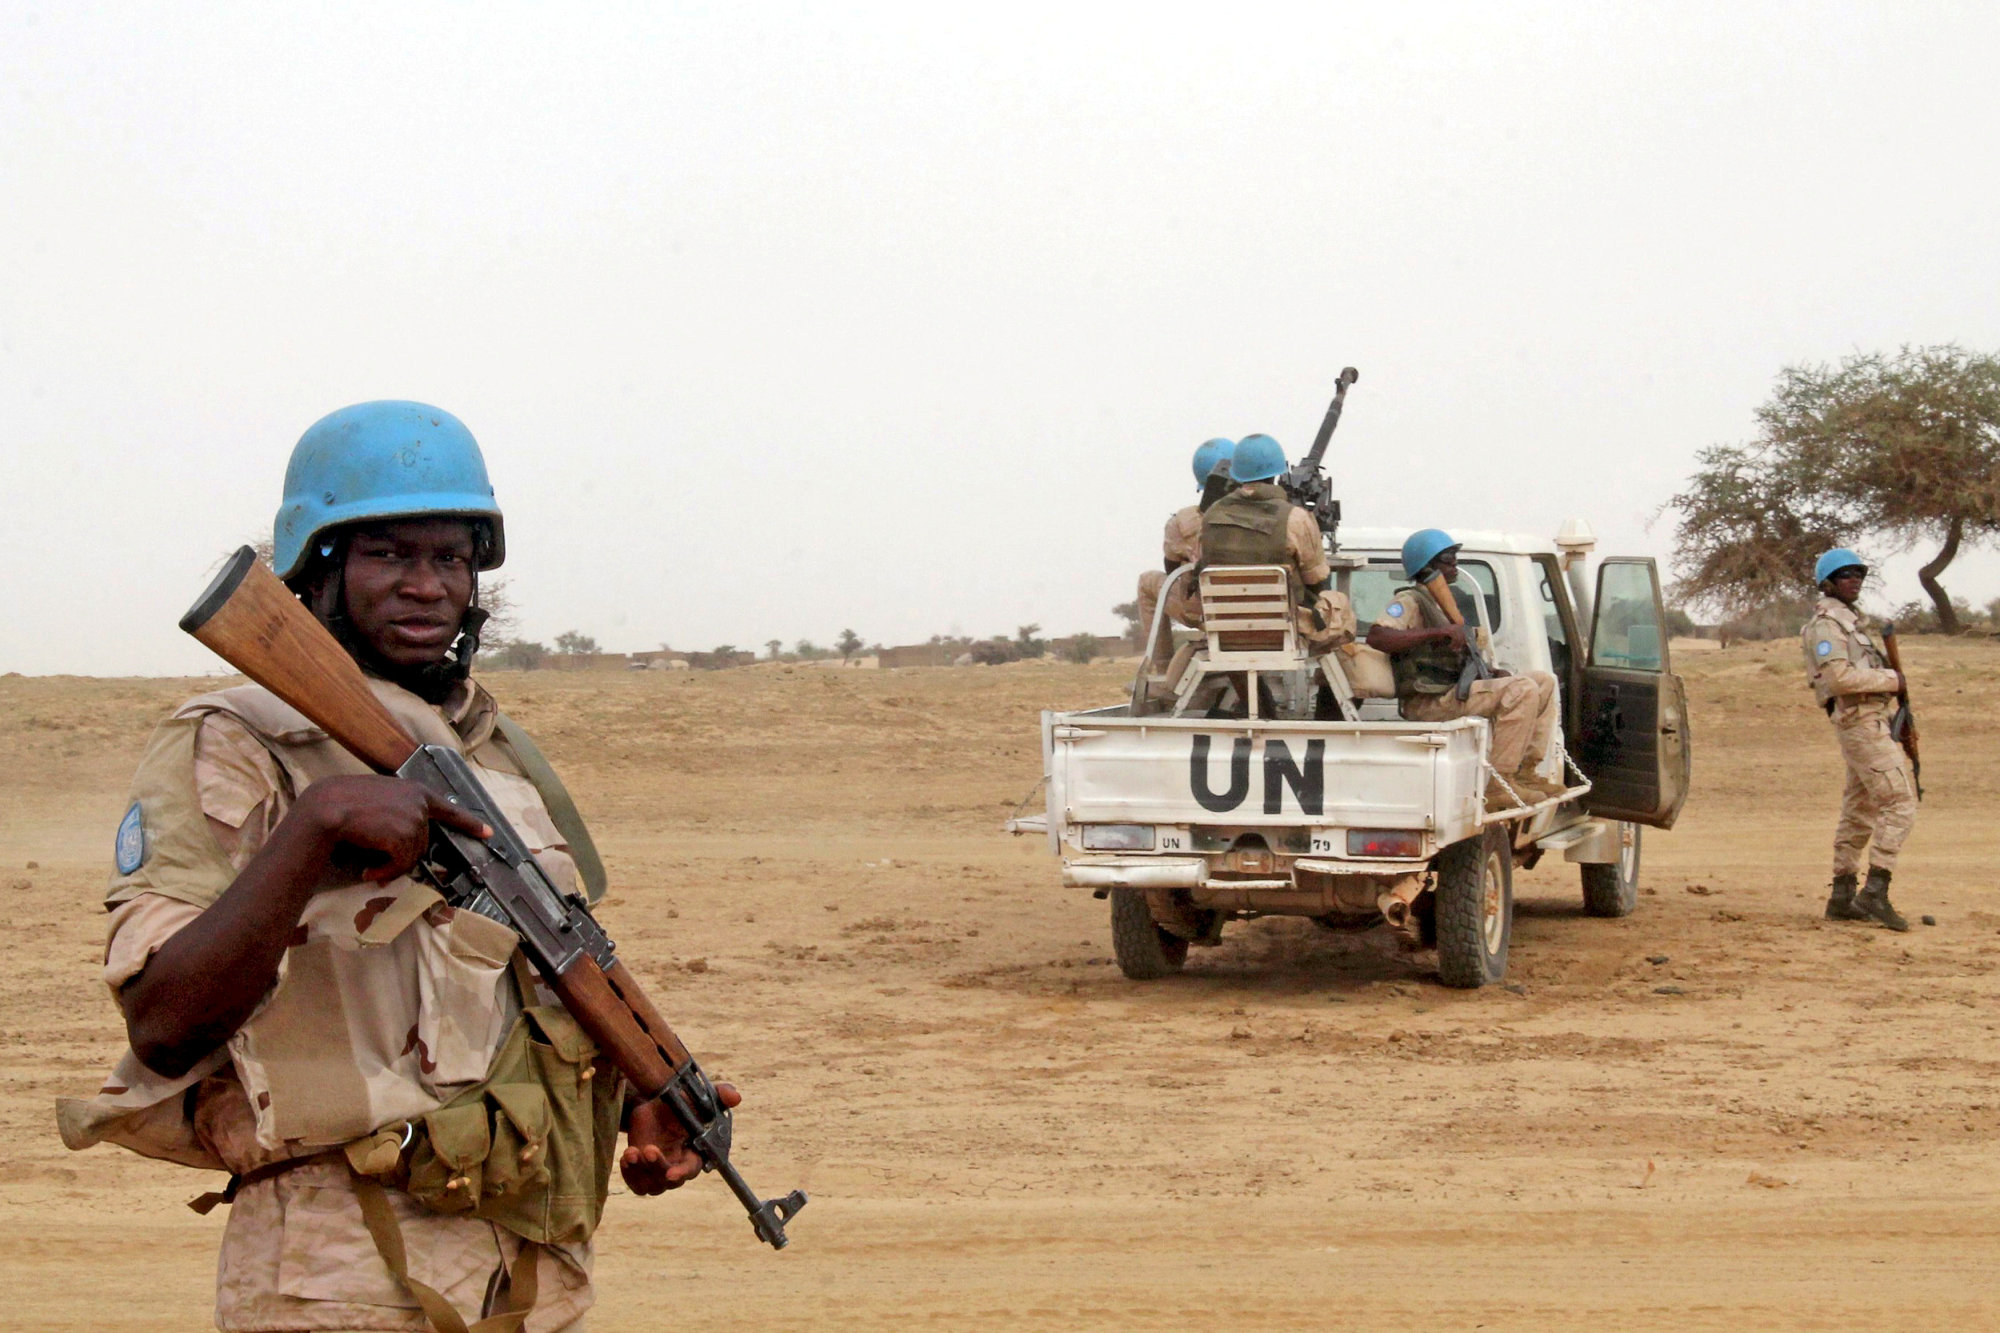 U.N. peacekeepers stand guard in the northern town of Kouroume, Mali, in 2015. Kourome is 18 km (11 miles) south of Timbuktu. | REUTERS